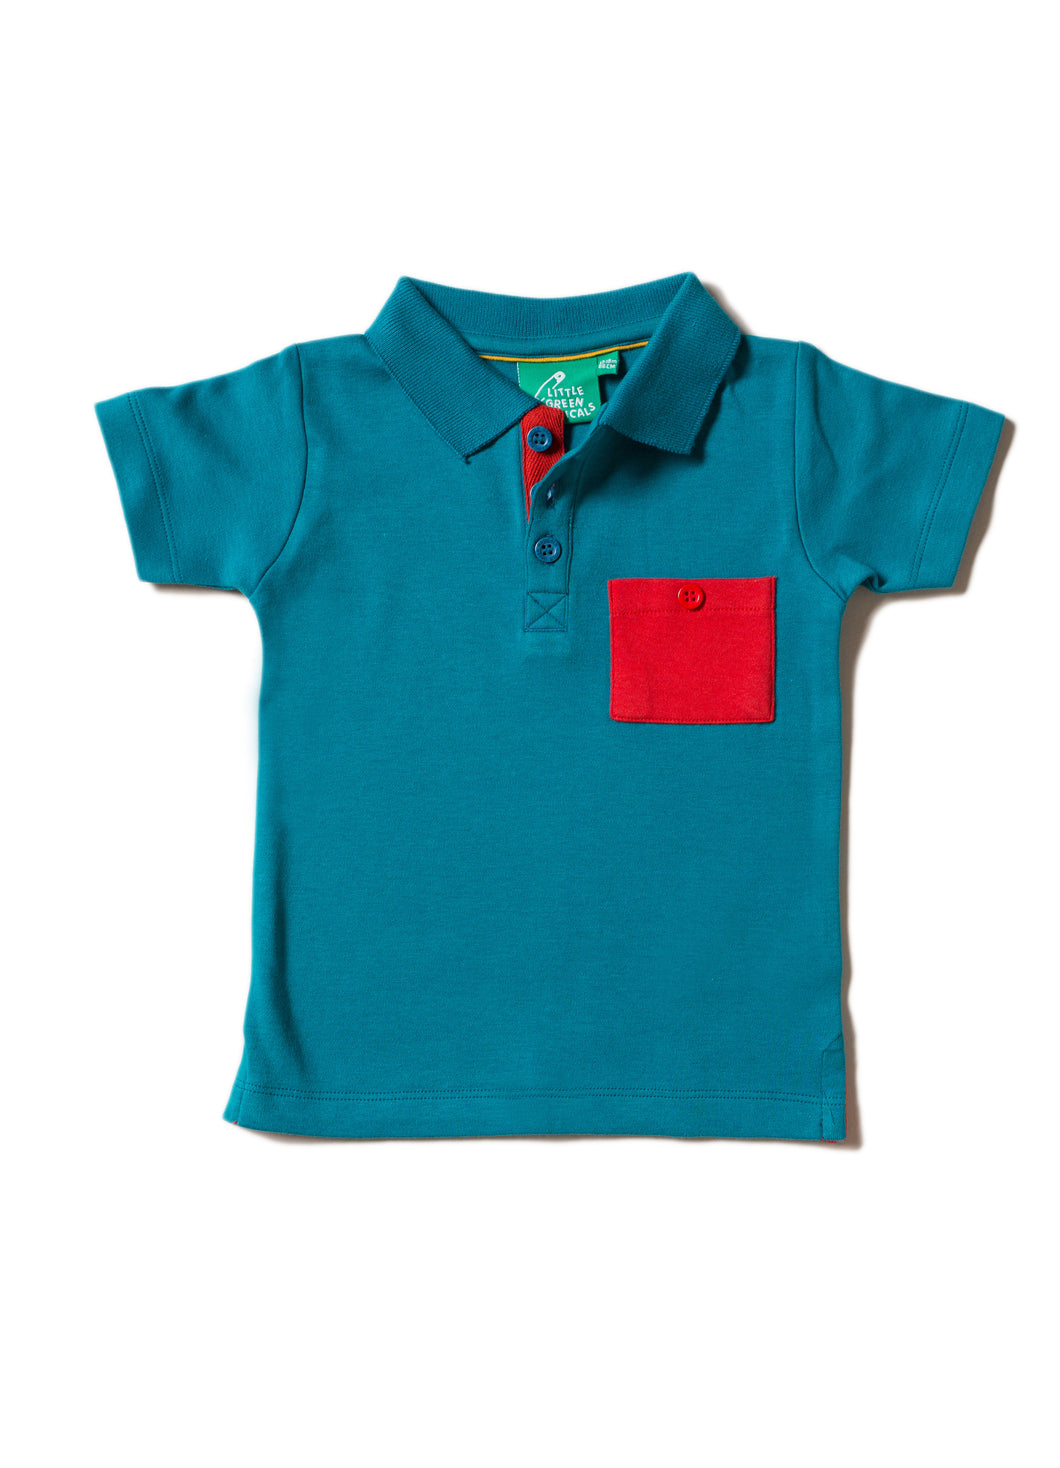 LGR Teal Short Sleeved Polo Shirt with Red Pocket